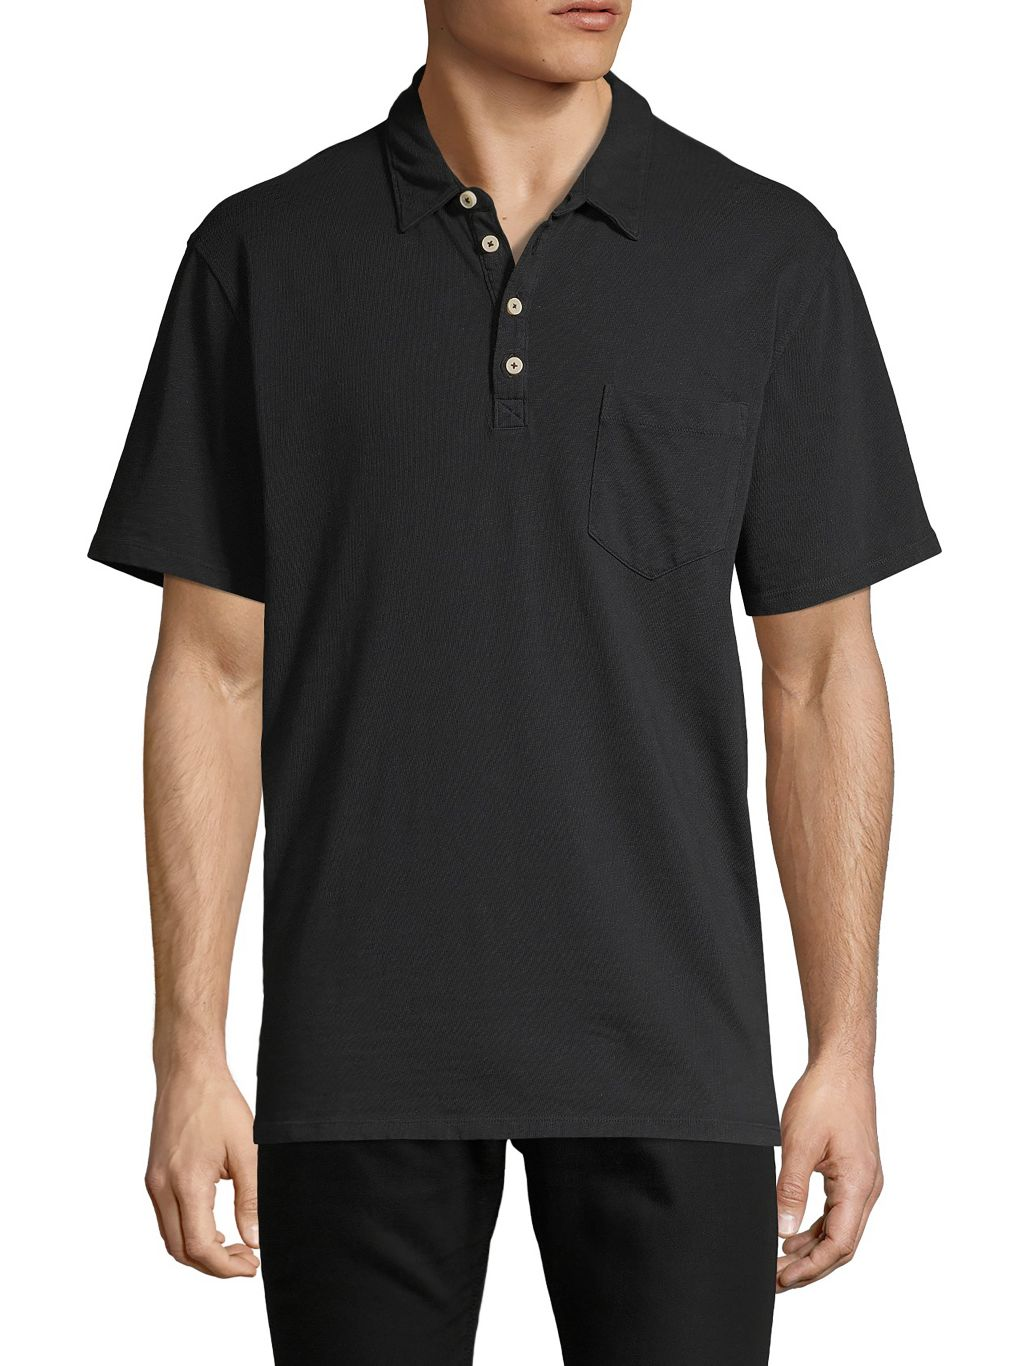 7 For All Mankind Short-Sleeve Cotton Polo